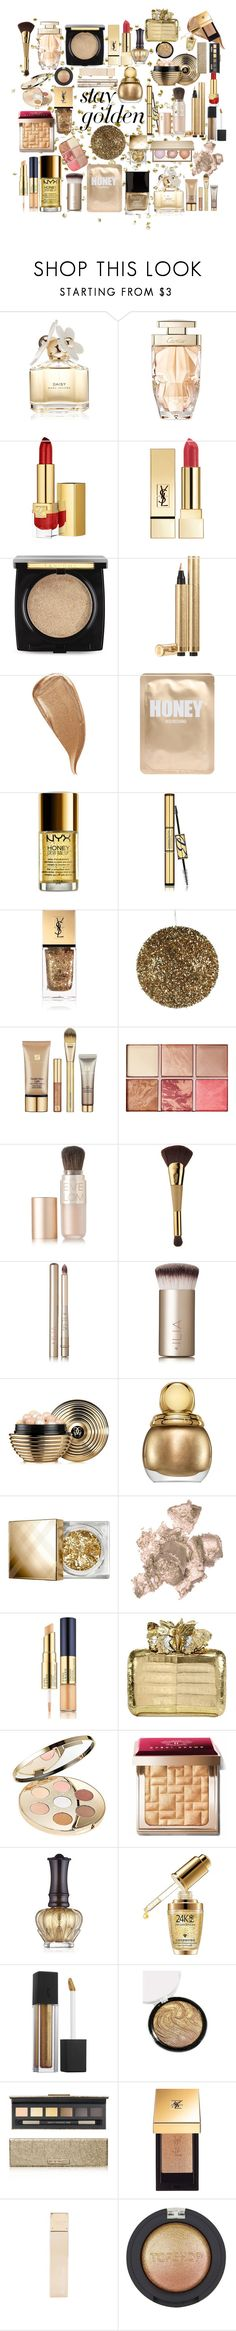 """Untitled #238"" by hallierosedale ❤ liked on Polyvore featuring beauty, Marc Jacobs, Cartier, Estée Lauder, PUR, Lancôme, Yves Saint Laurent, Kevyn Aucoin, Lapcos and NYX"